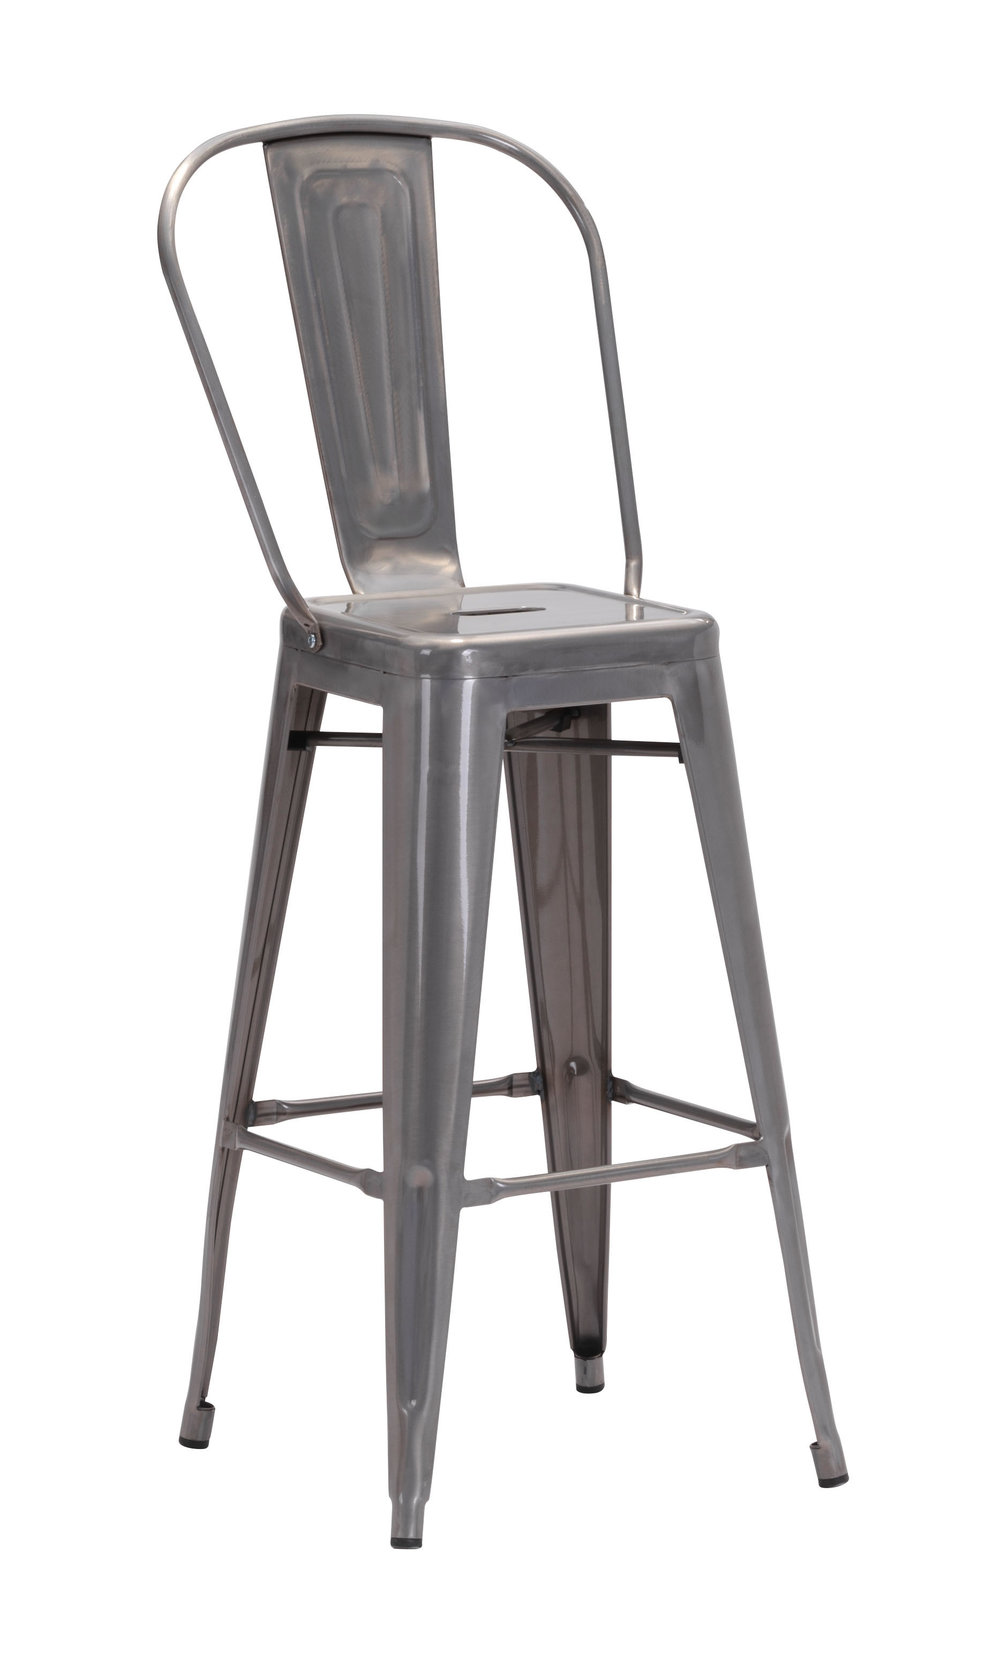 Zuo Modern Contemporary - Elio Bar Chair - Set of 2 - Gunmetal